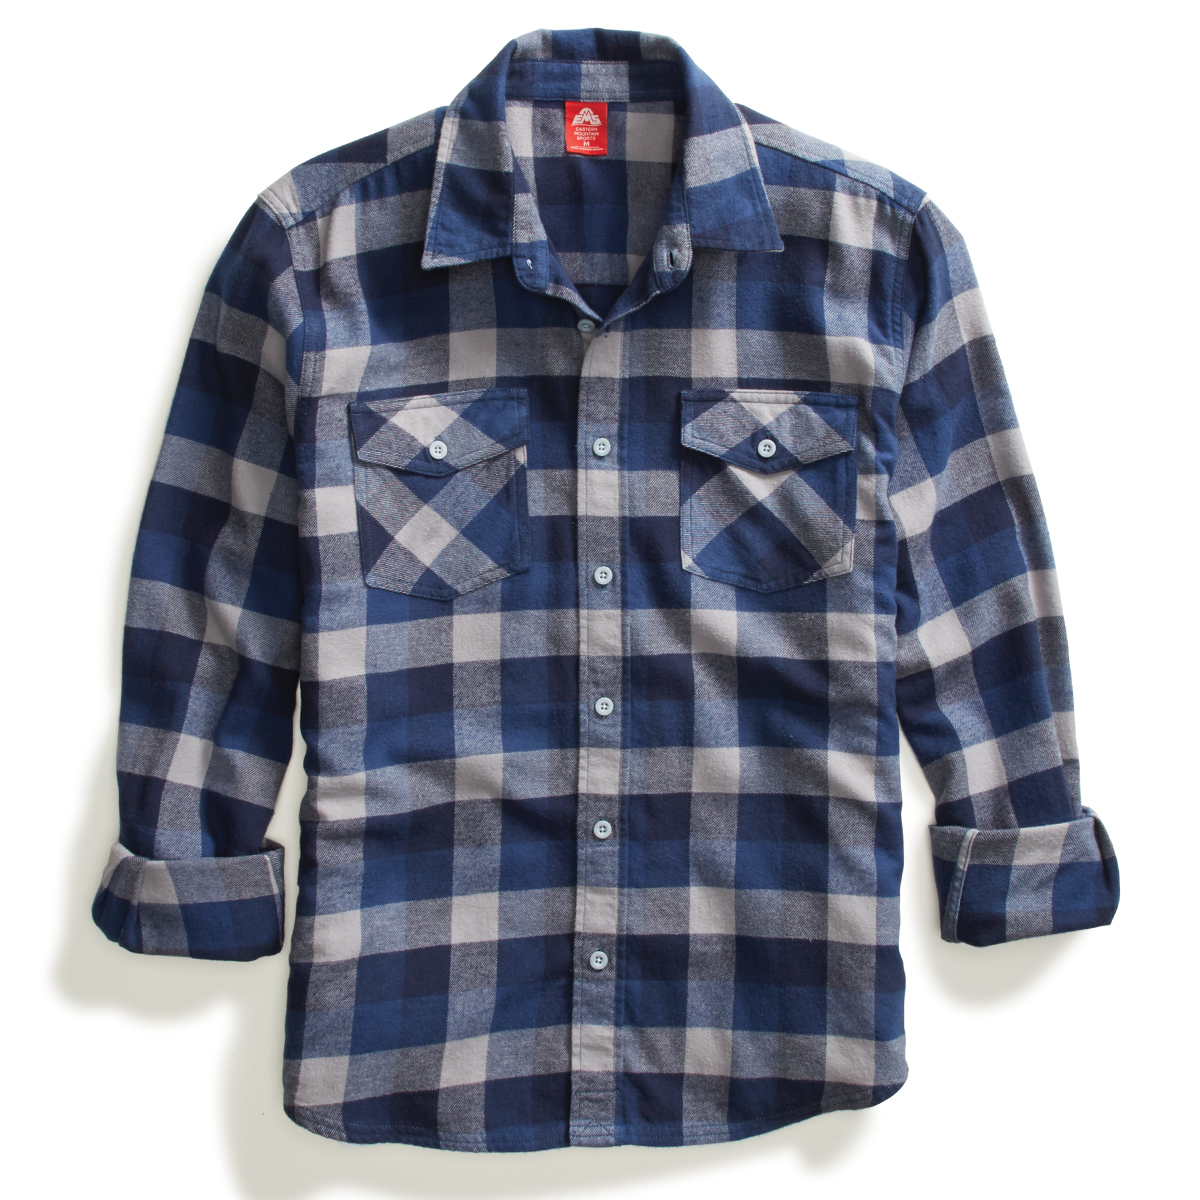 Ems Men's Timber Flannel Long-Sleeve Shirt - Blue, S